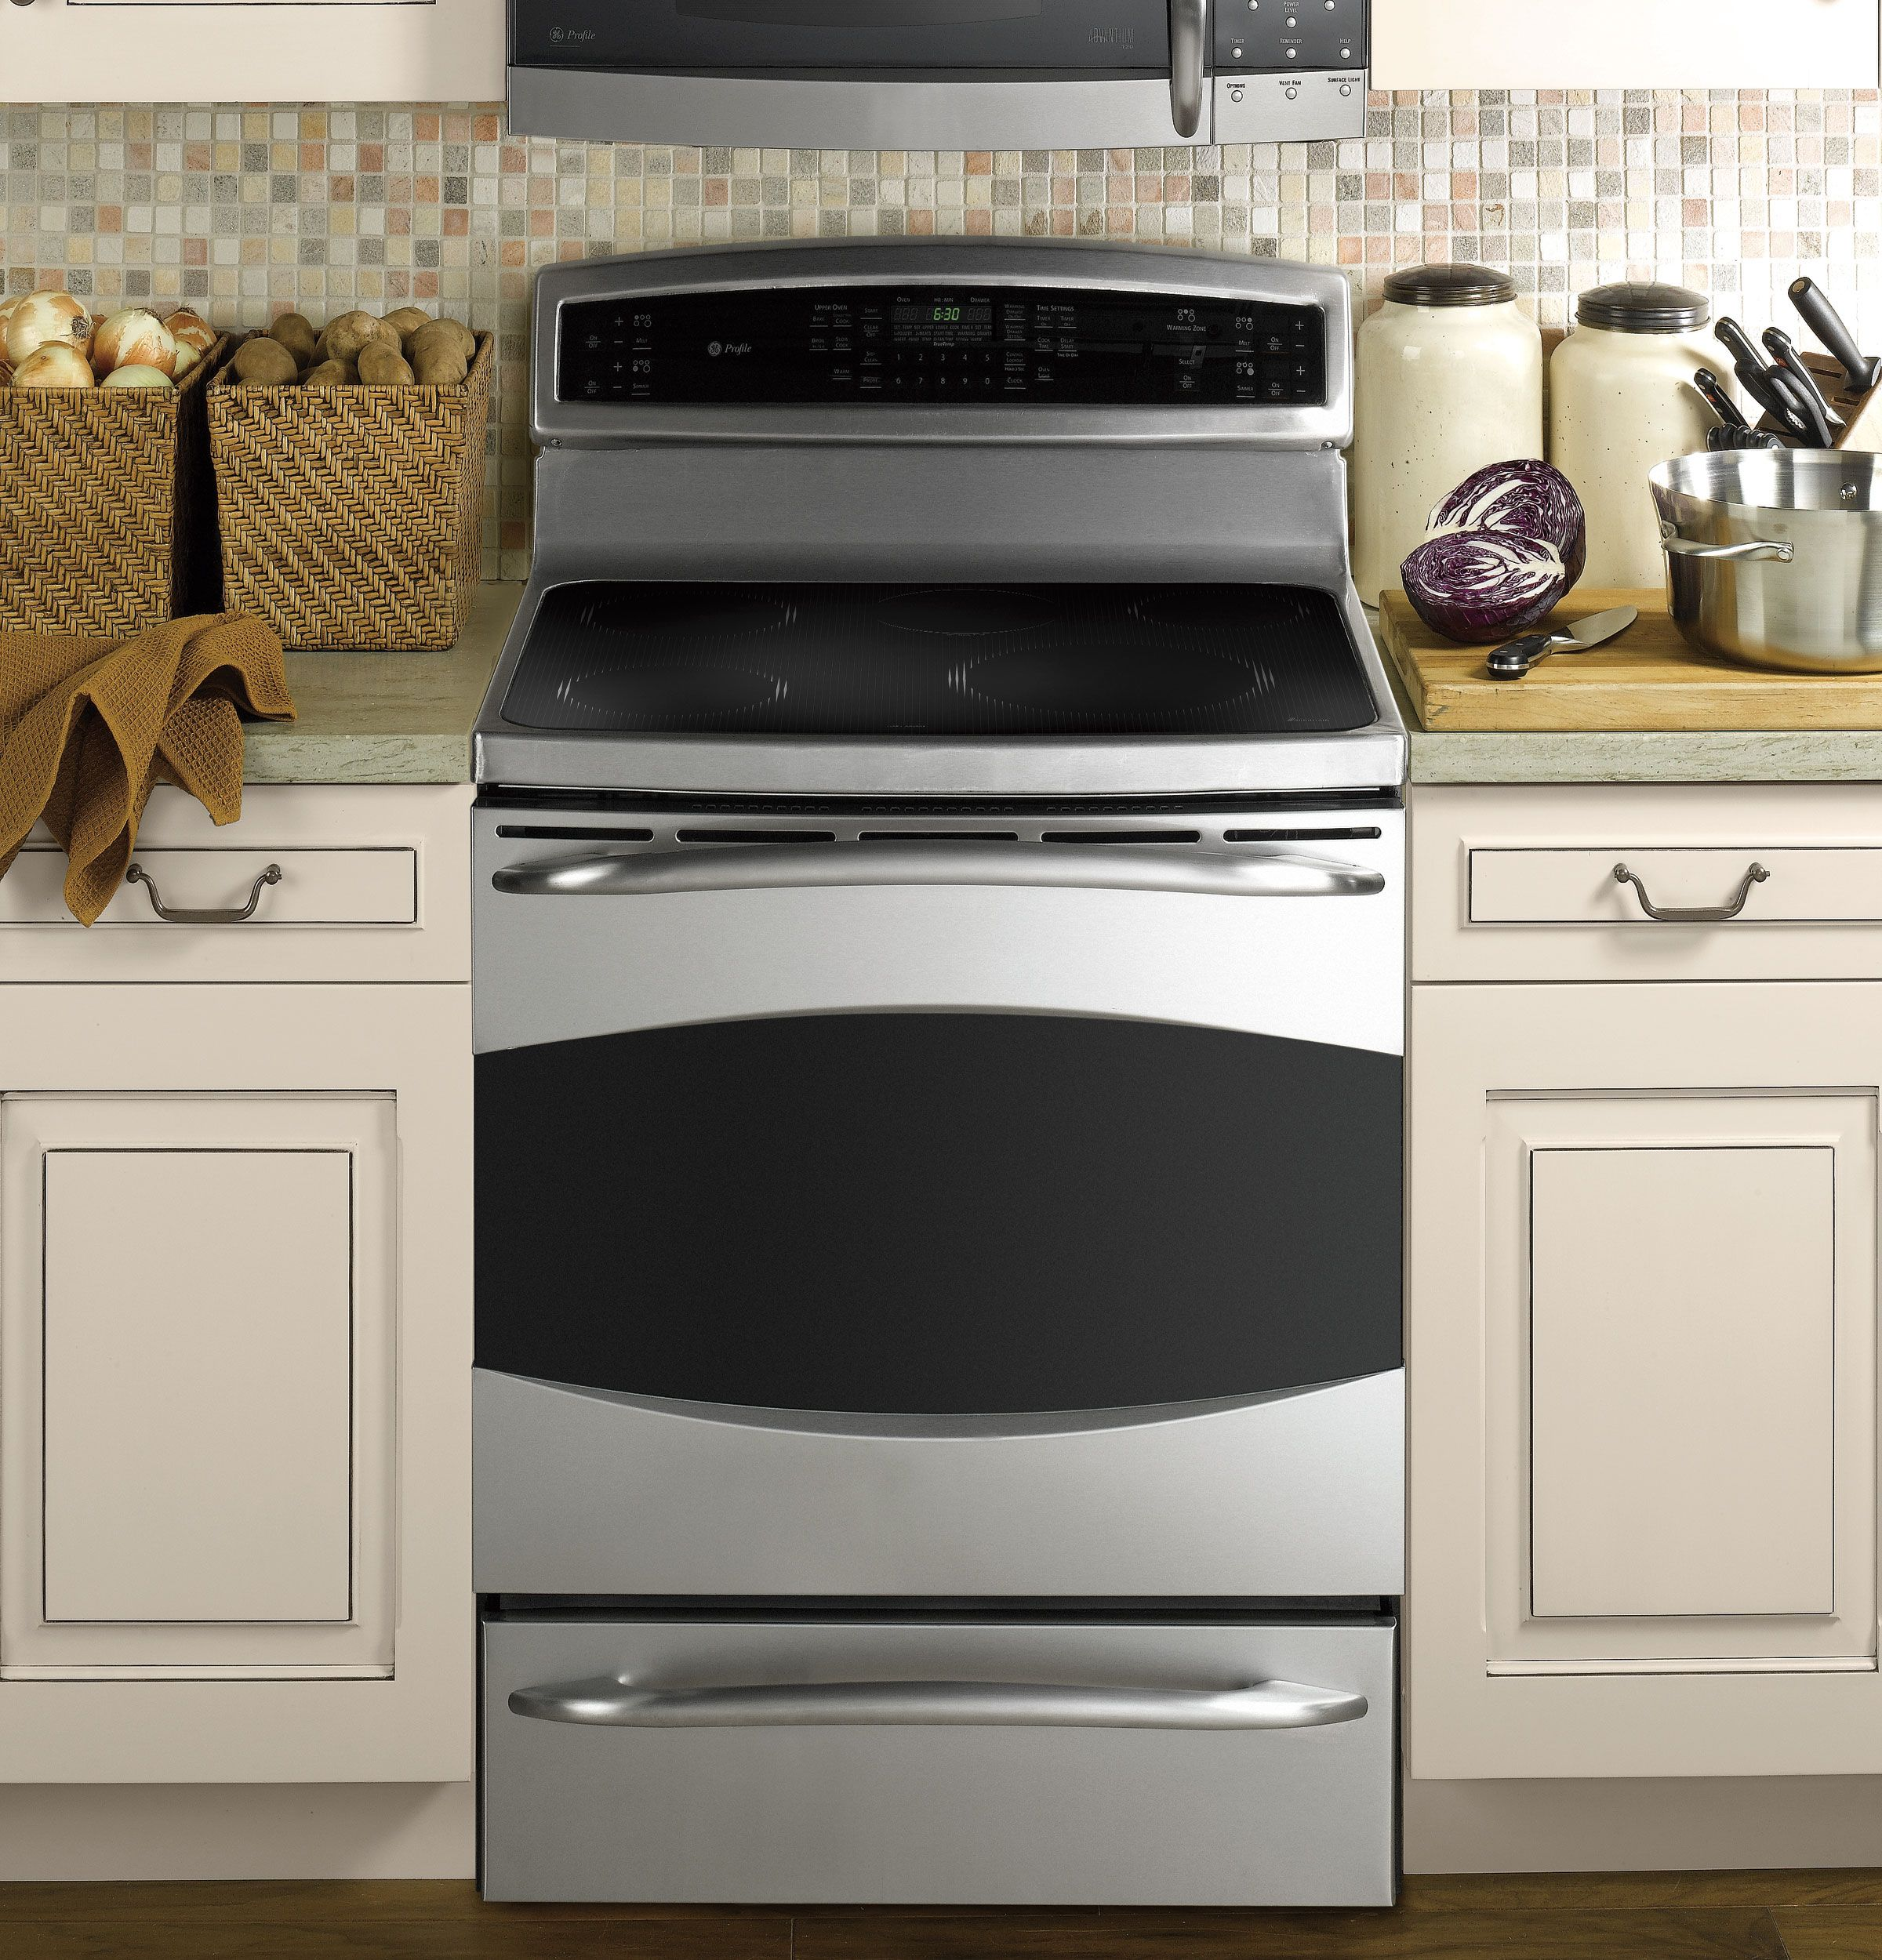 Phb925stss Ge Profile 30 Free Standing Induction Range With